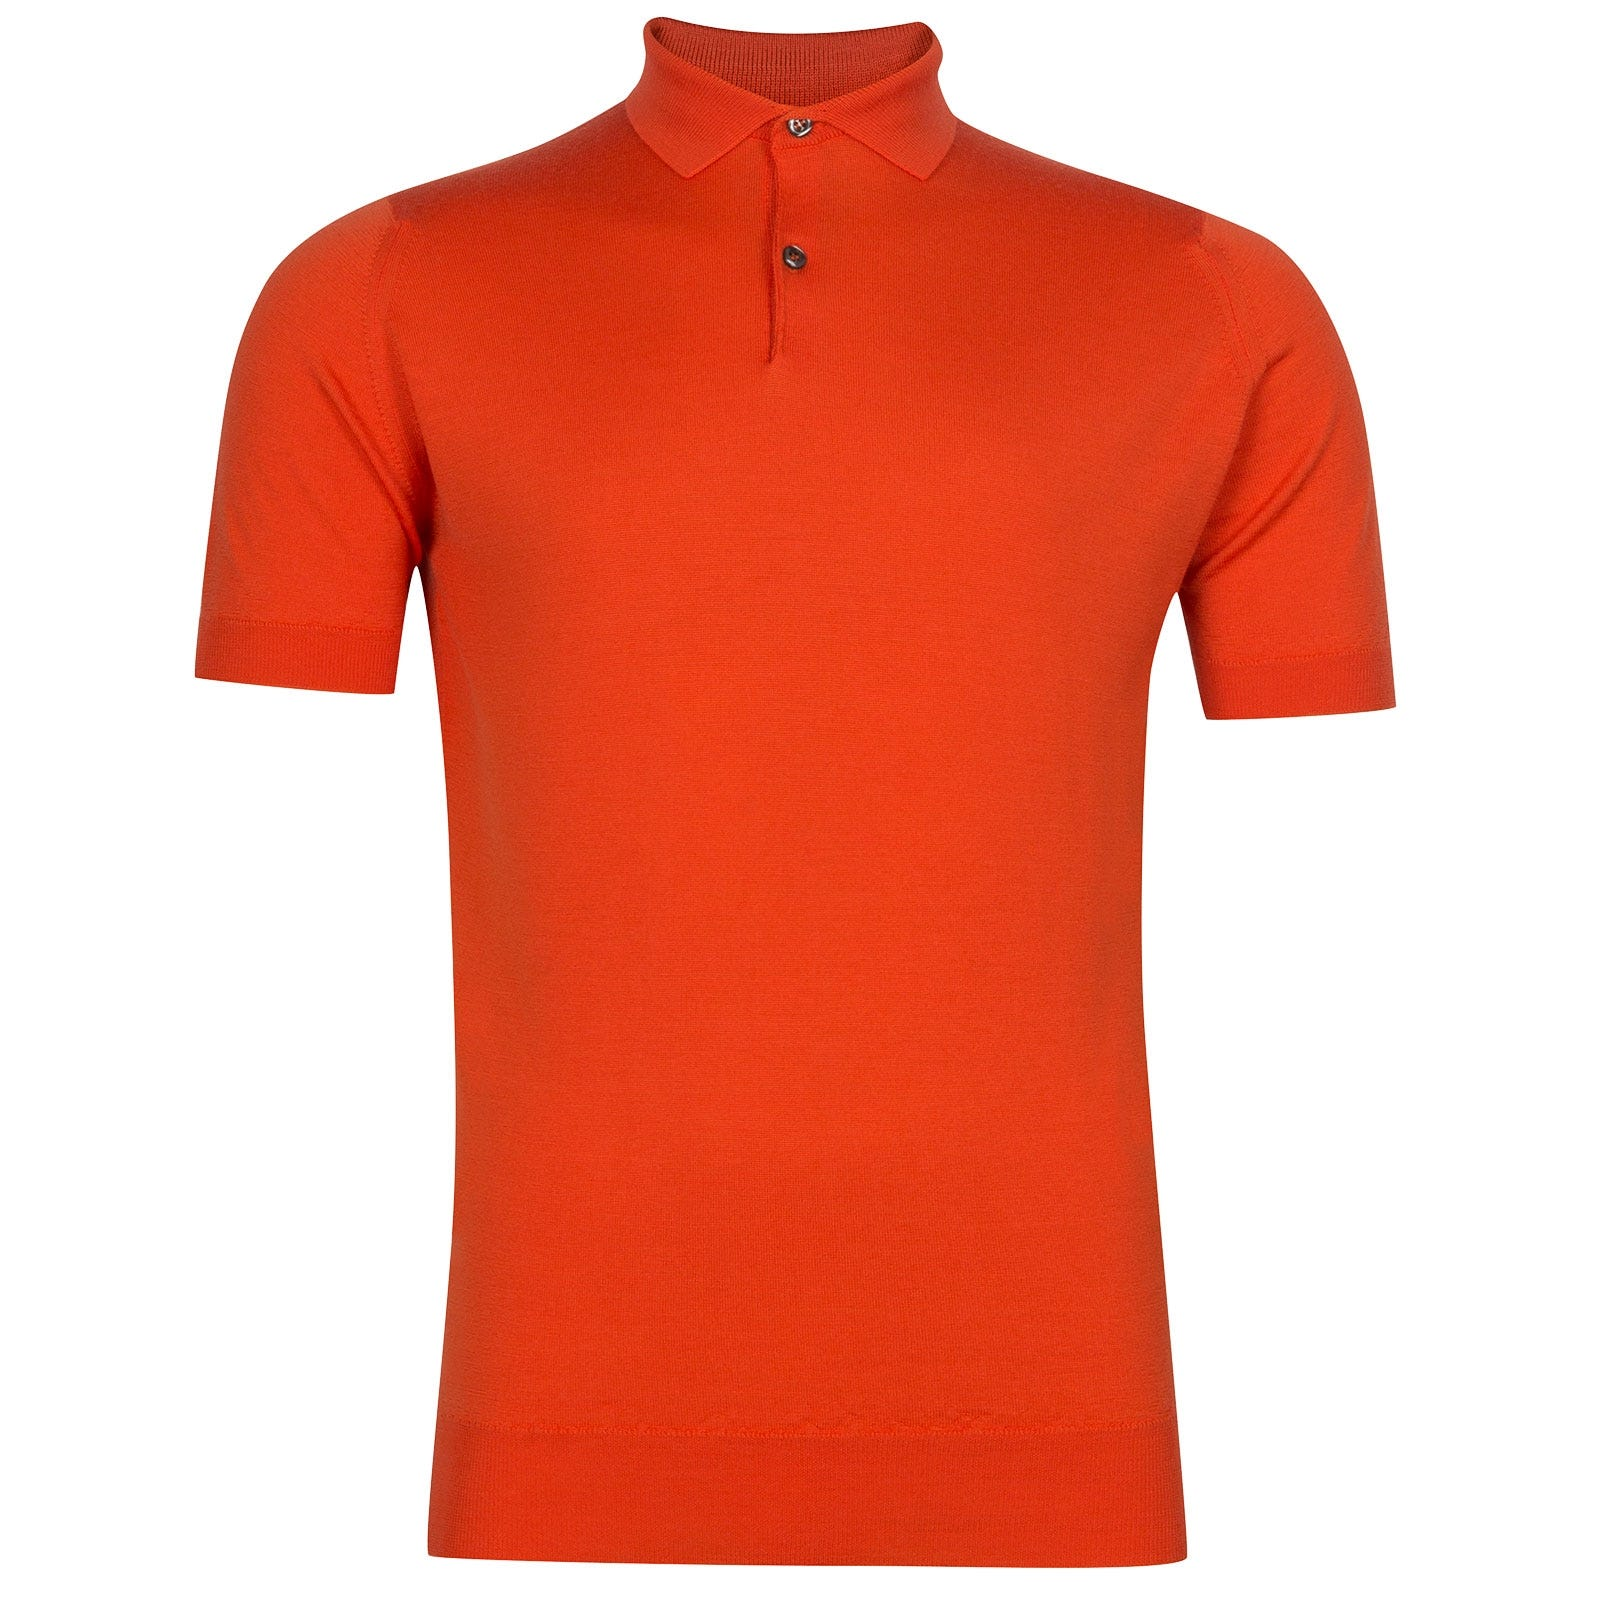 John Smedley Payton Merino Wool Shirt in Blaze Orange-XXL